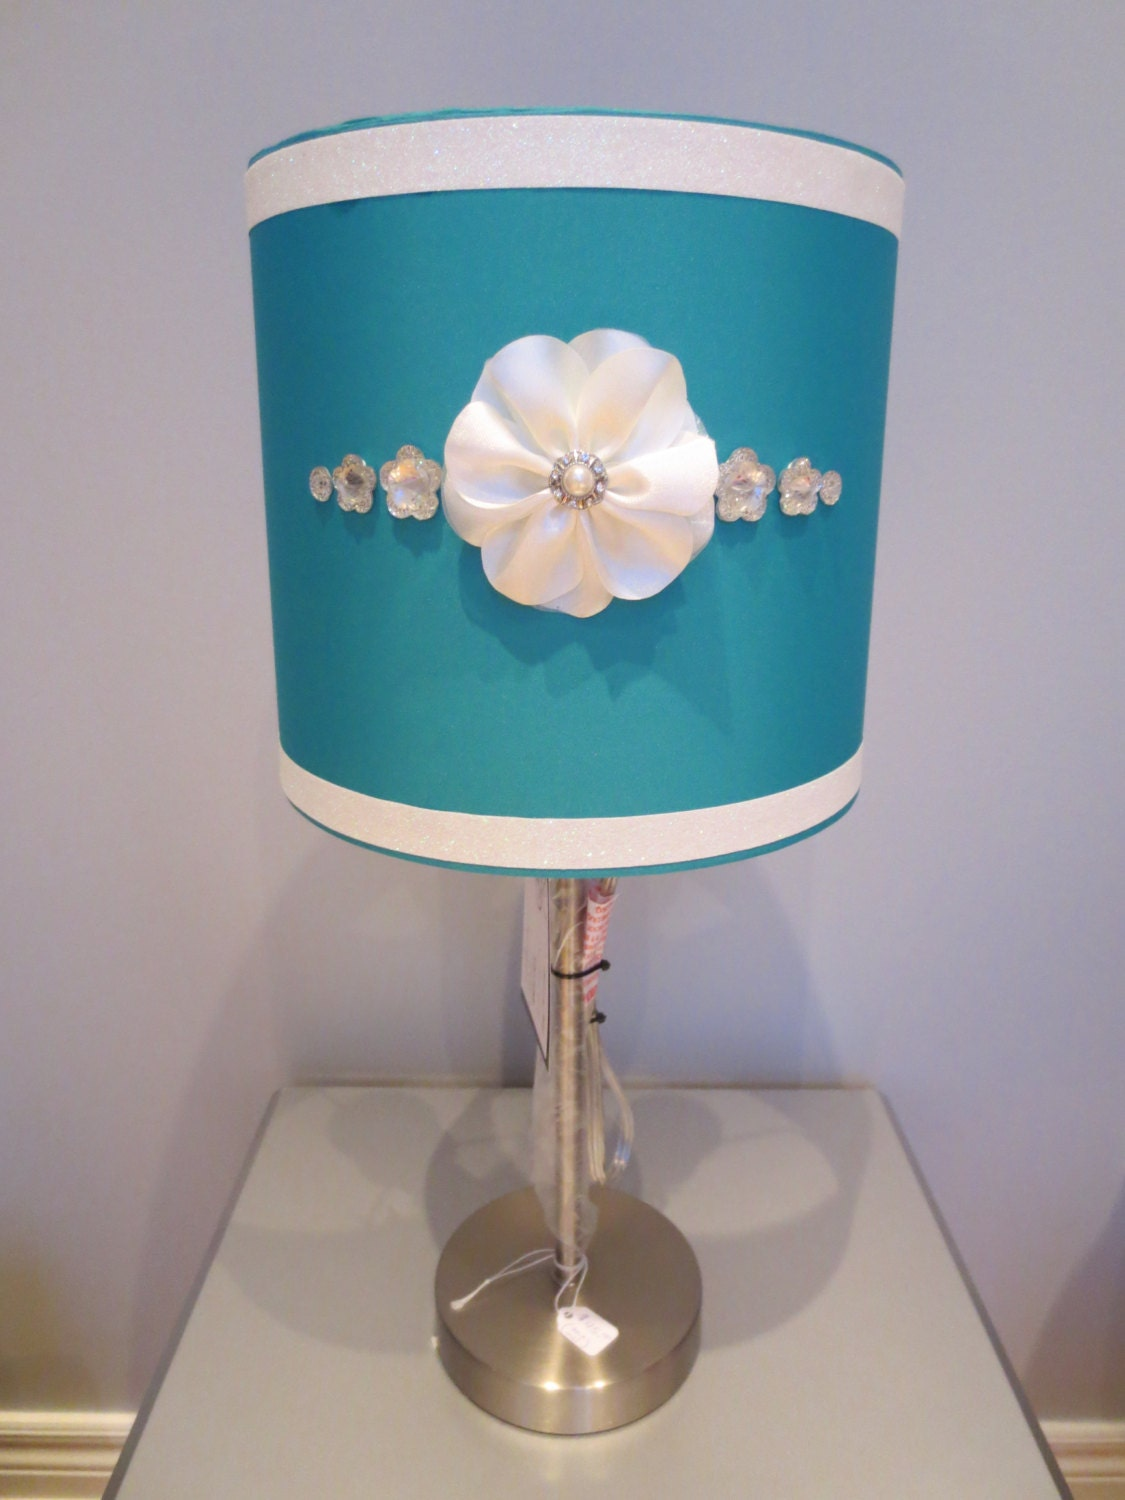 Girly Glam Lamp With Teal Lamp Shade White Floral